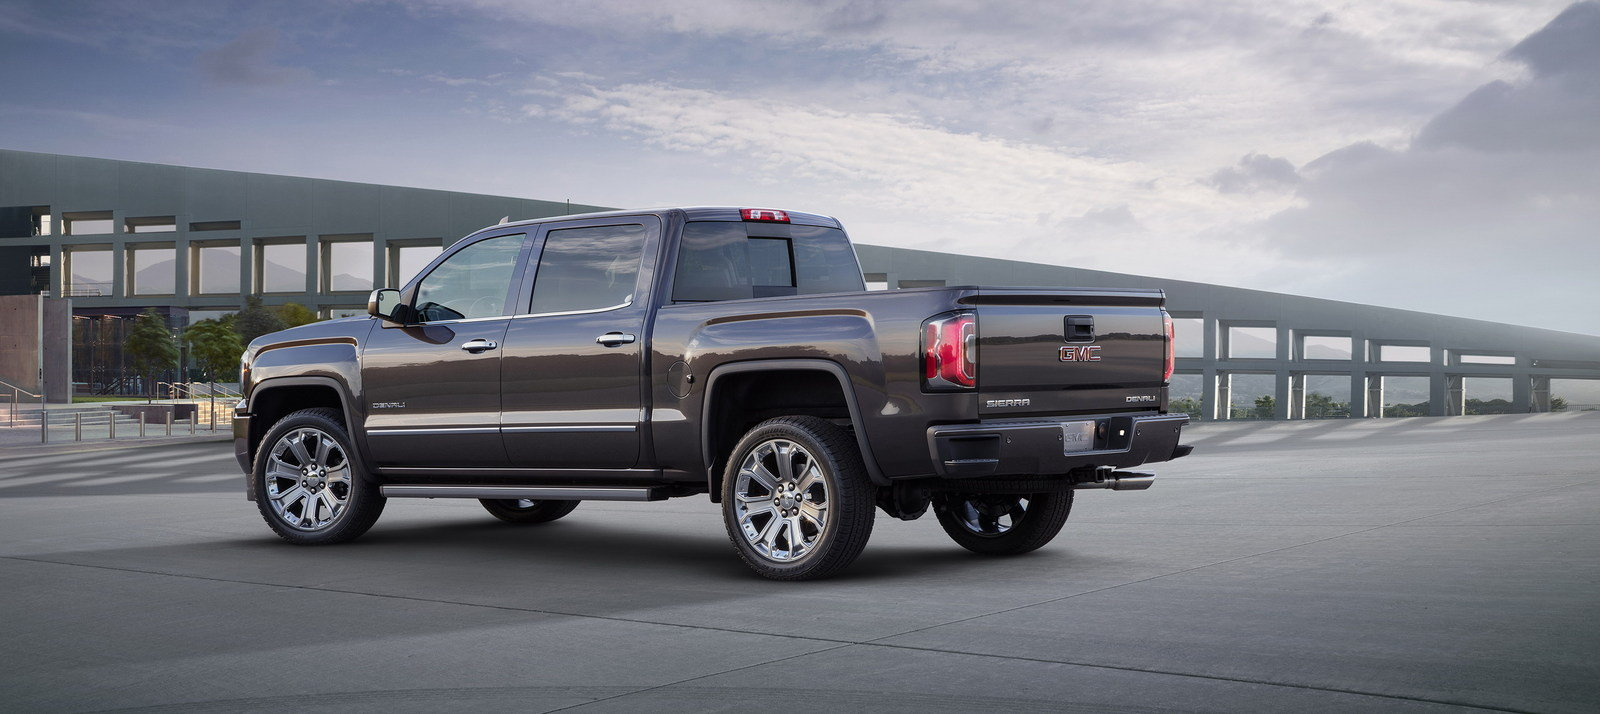 2017 gmc sierra denali ultimate picture 655878 truck review top speed. Black Bedroom Furniture Sets. Home Design Ideas